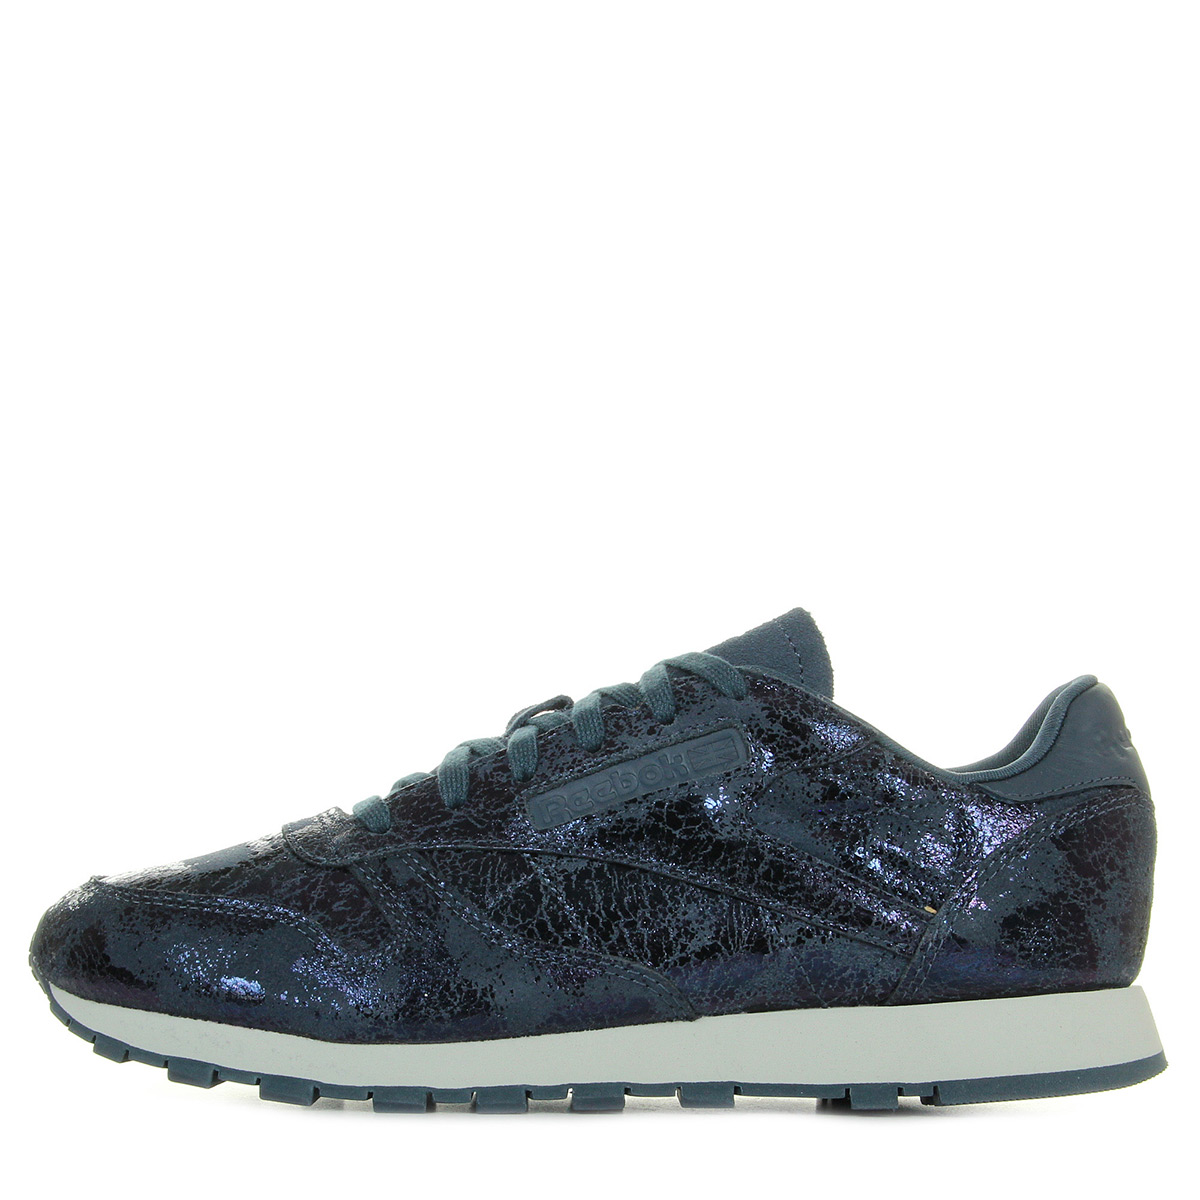 Leather Reebok Femme Bs6784Baskets Mode Classic Textural SpUVGqzM